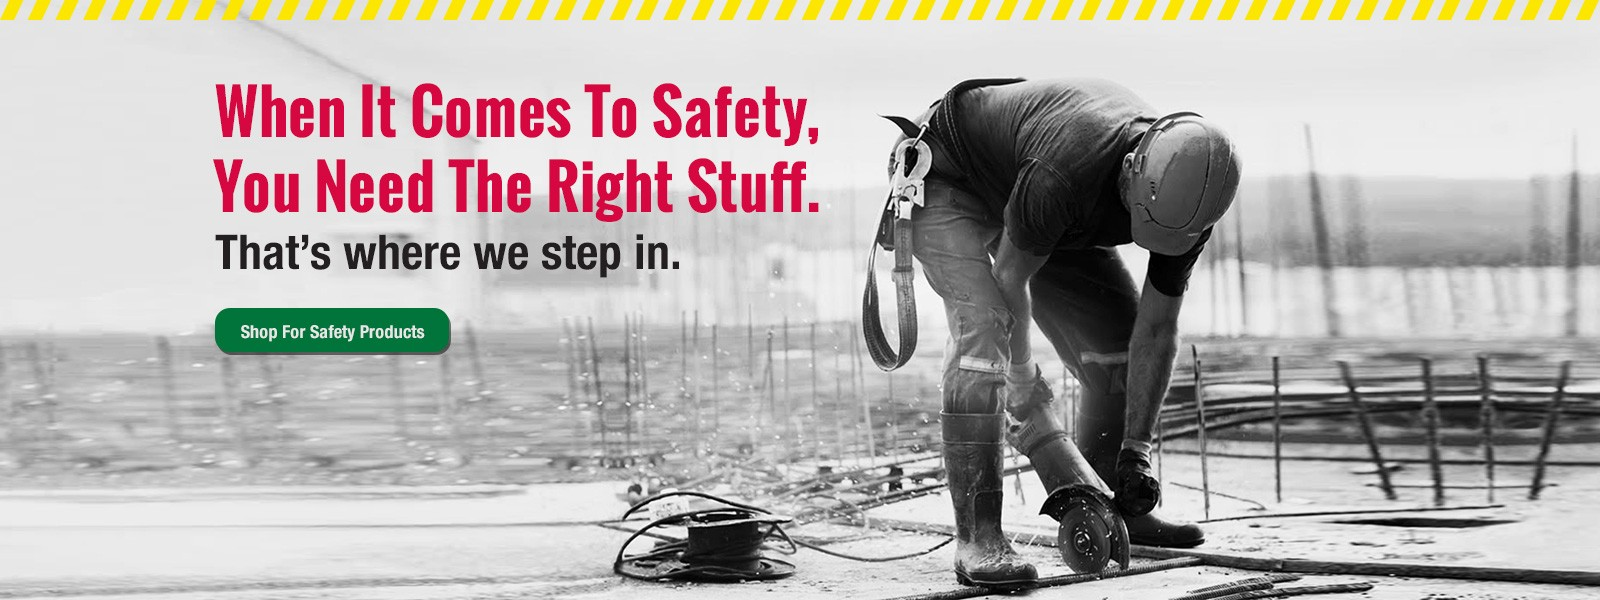 SSU-Safety-products-Construction-worker